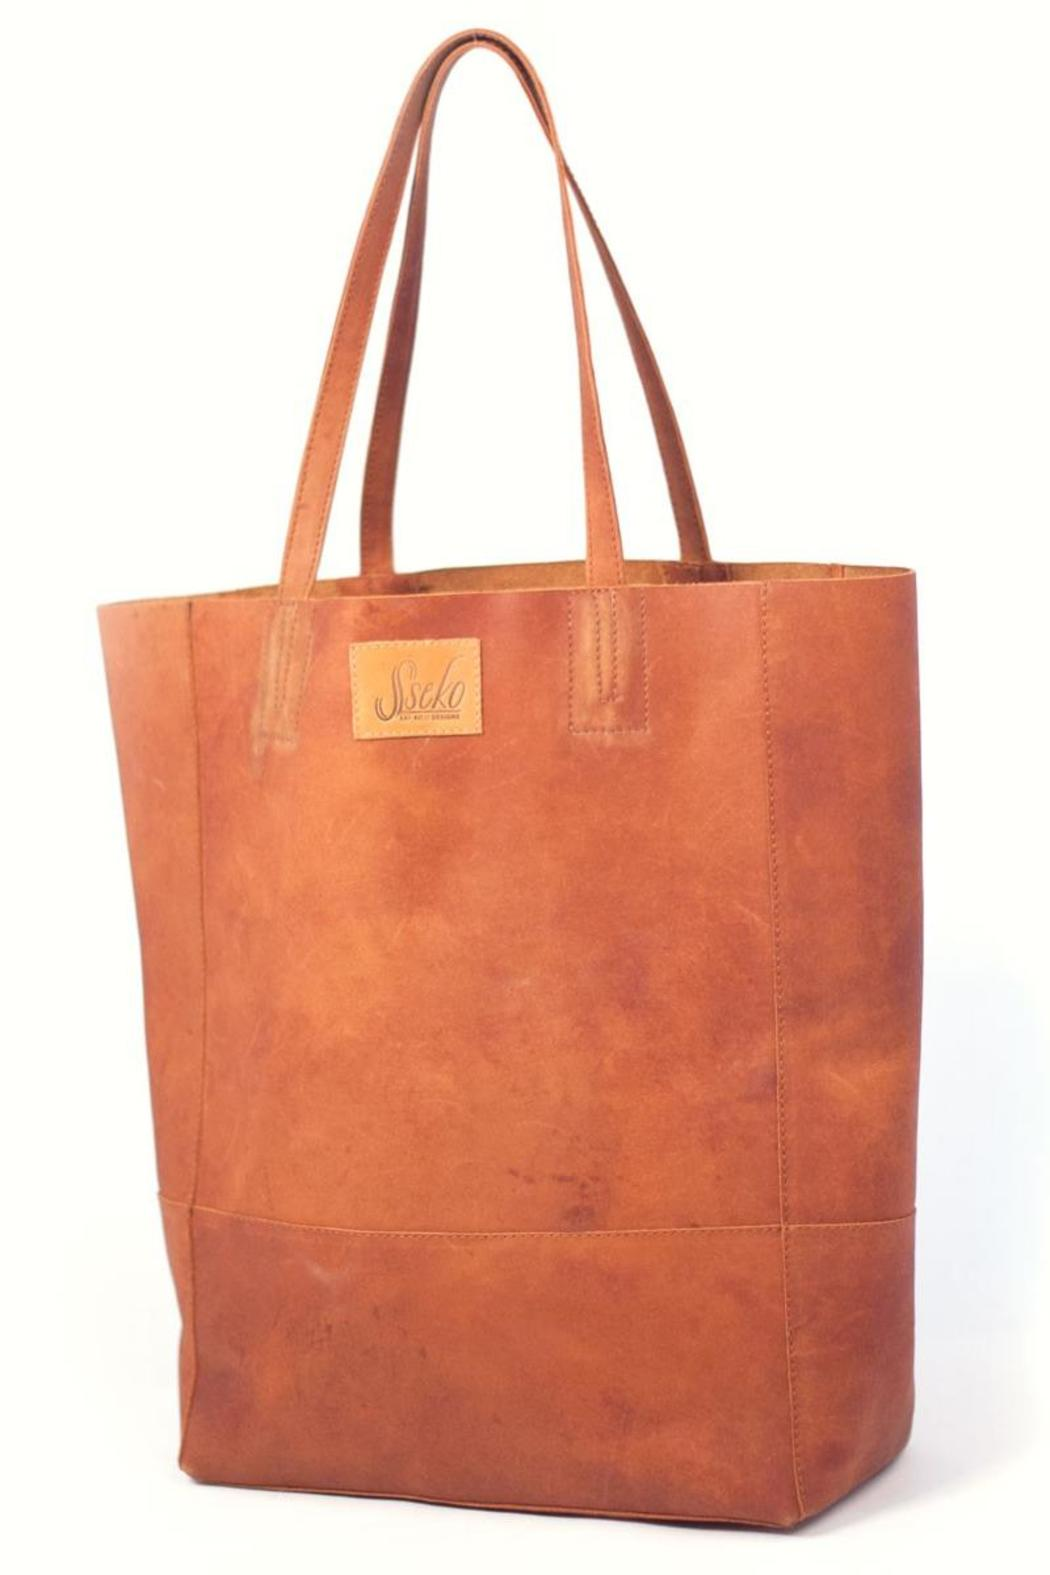 Sseko Designs Leather Bucket Bag From Charleston By Be The Change Boutique Shoptiques